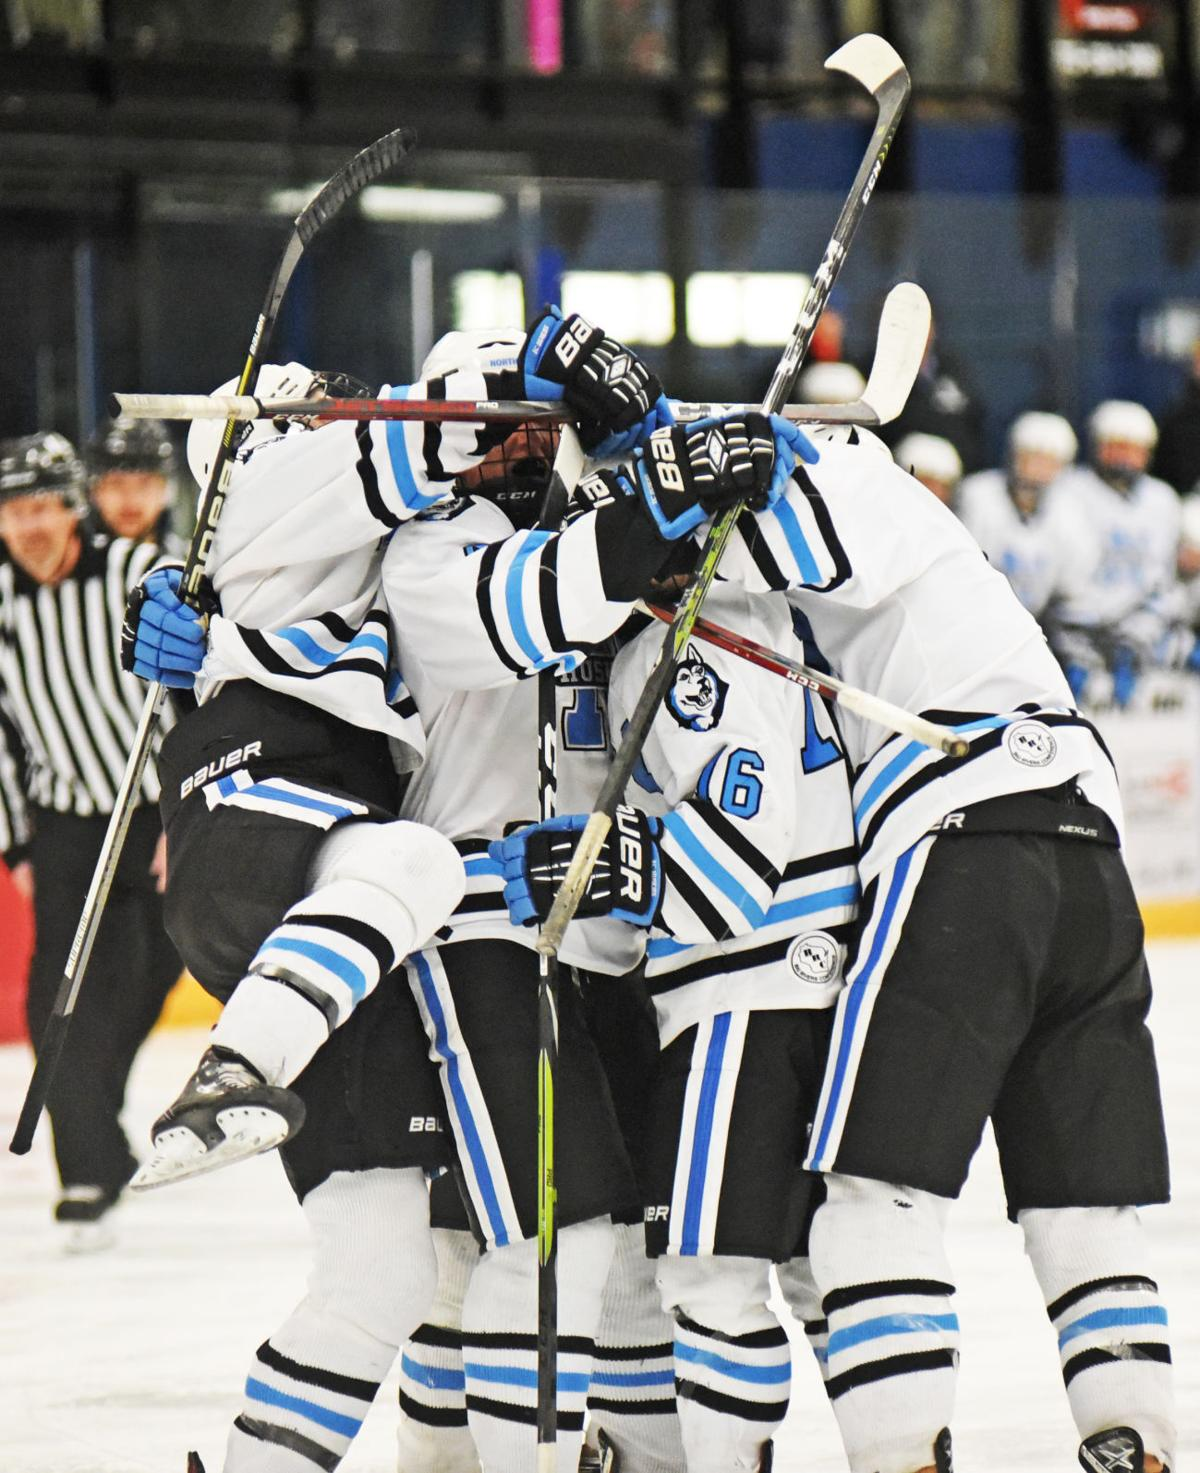 Eau Claire North hockey